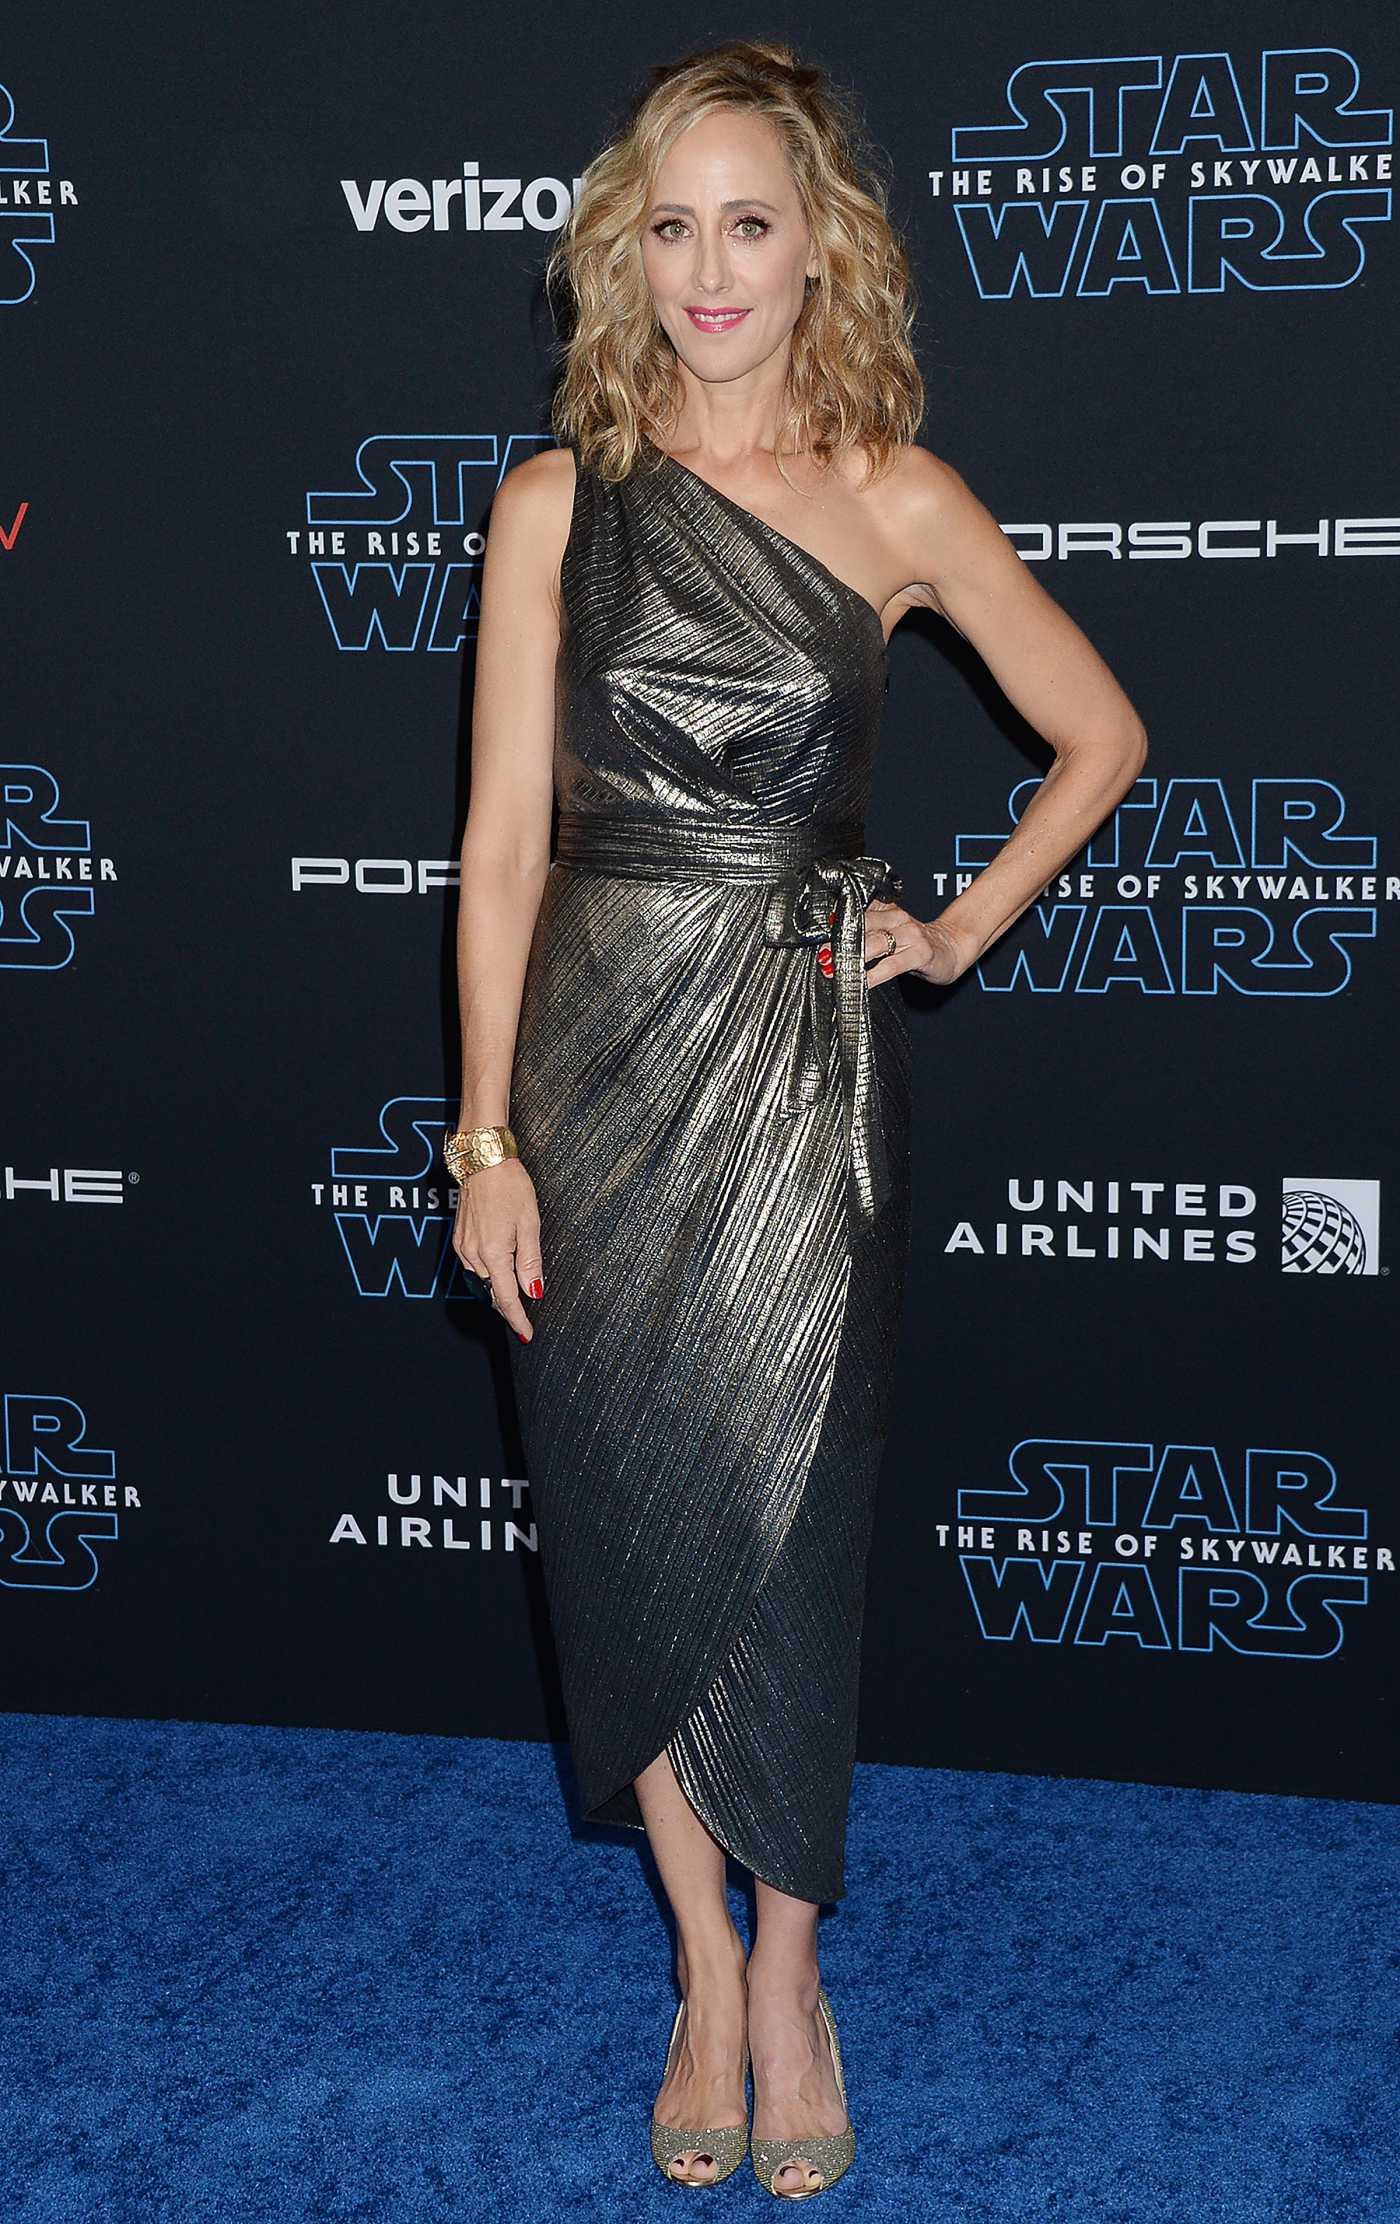 Kim Raver Attends Star Wars: The Rise of Skywalker Premiere in Los Angeles 12/16/2019